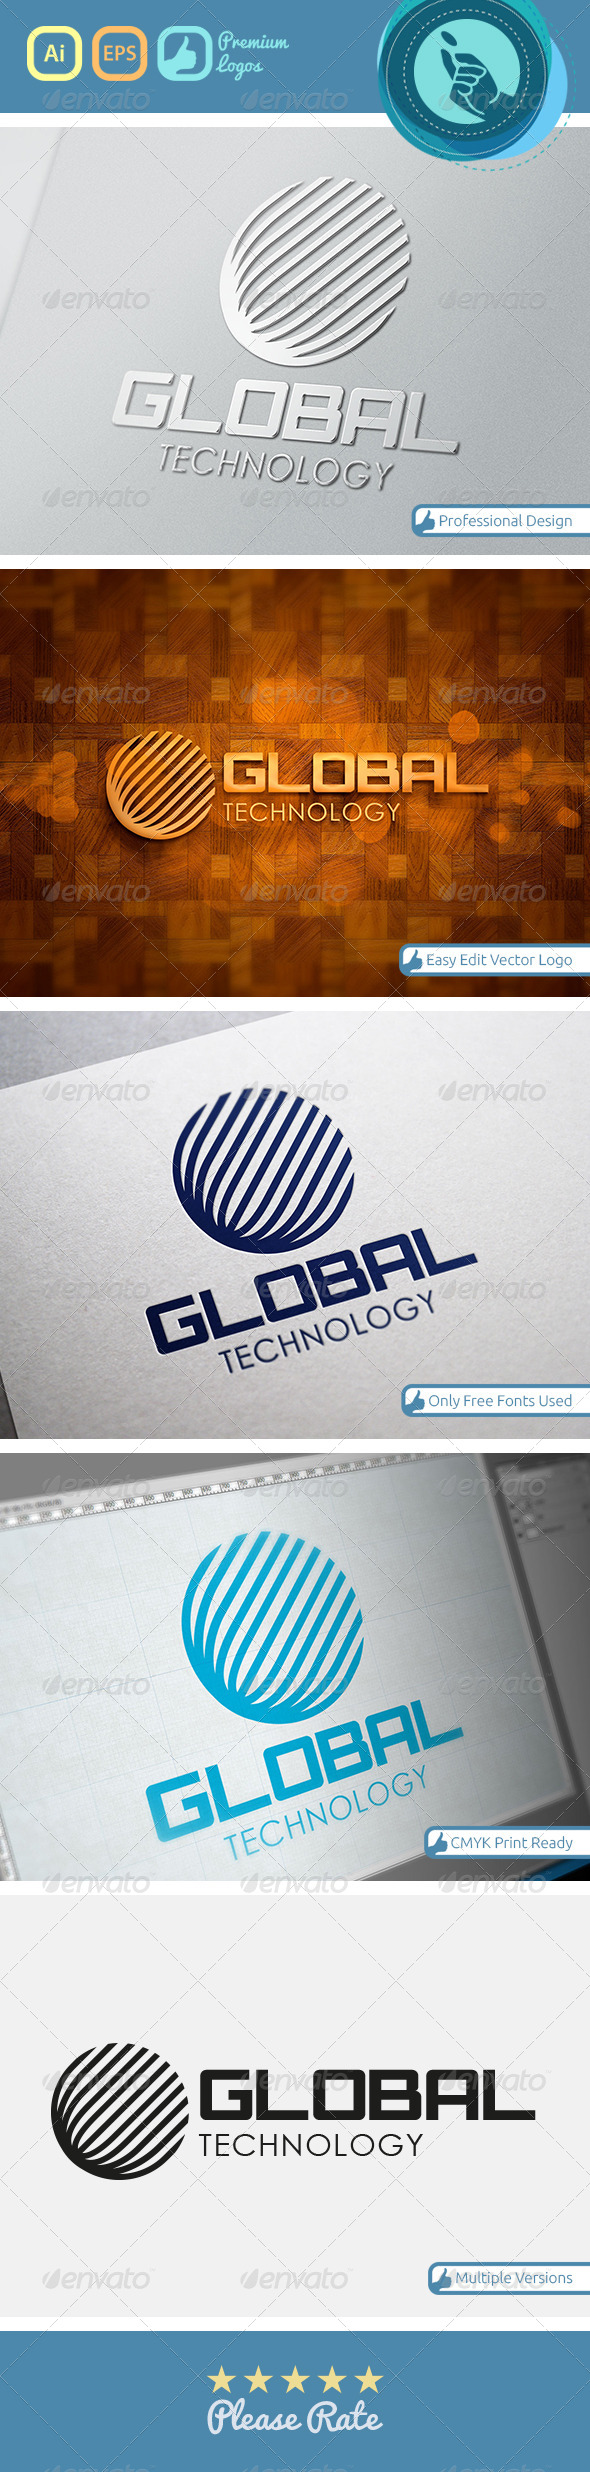 GraphicRiver Global Technology Logo 4762732